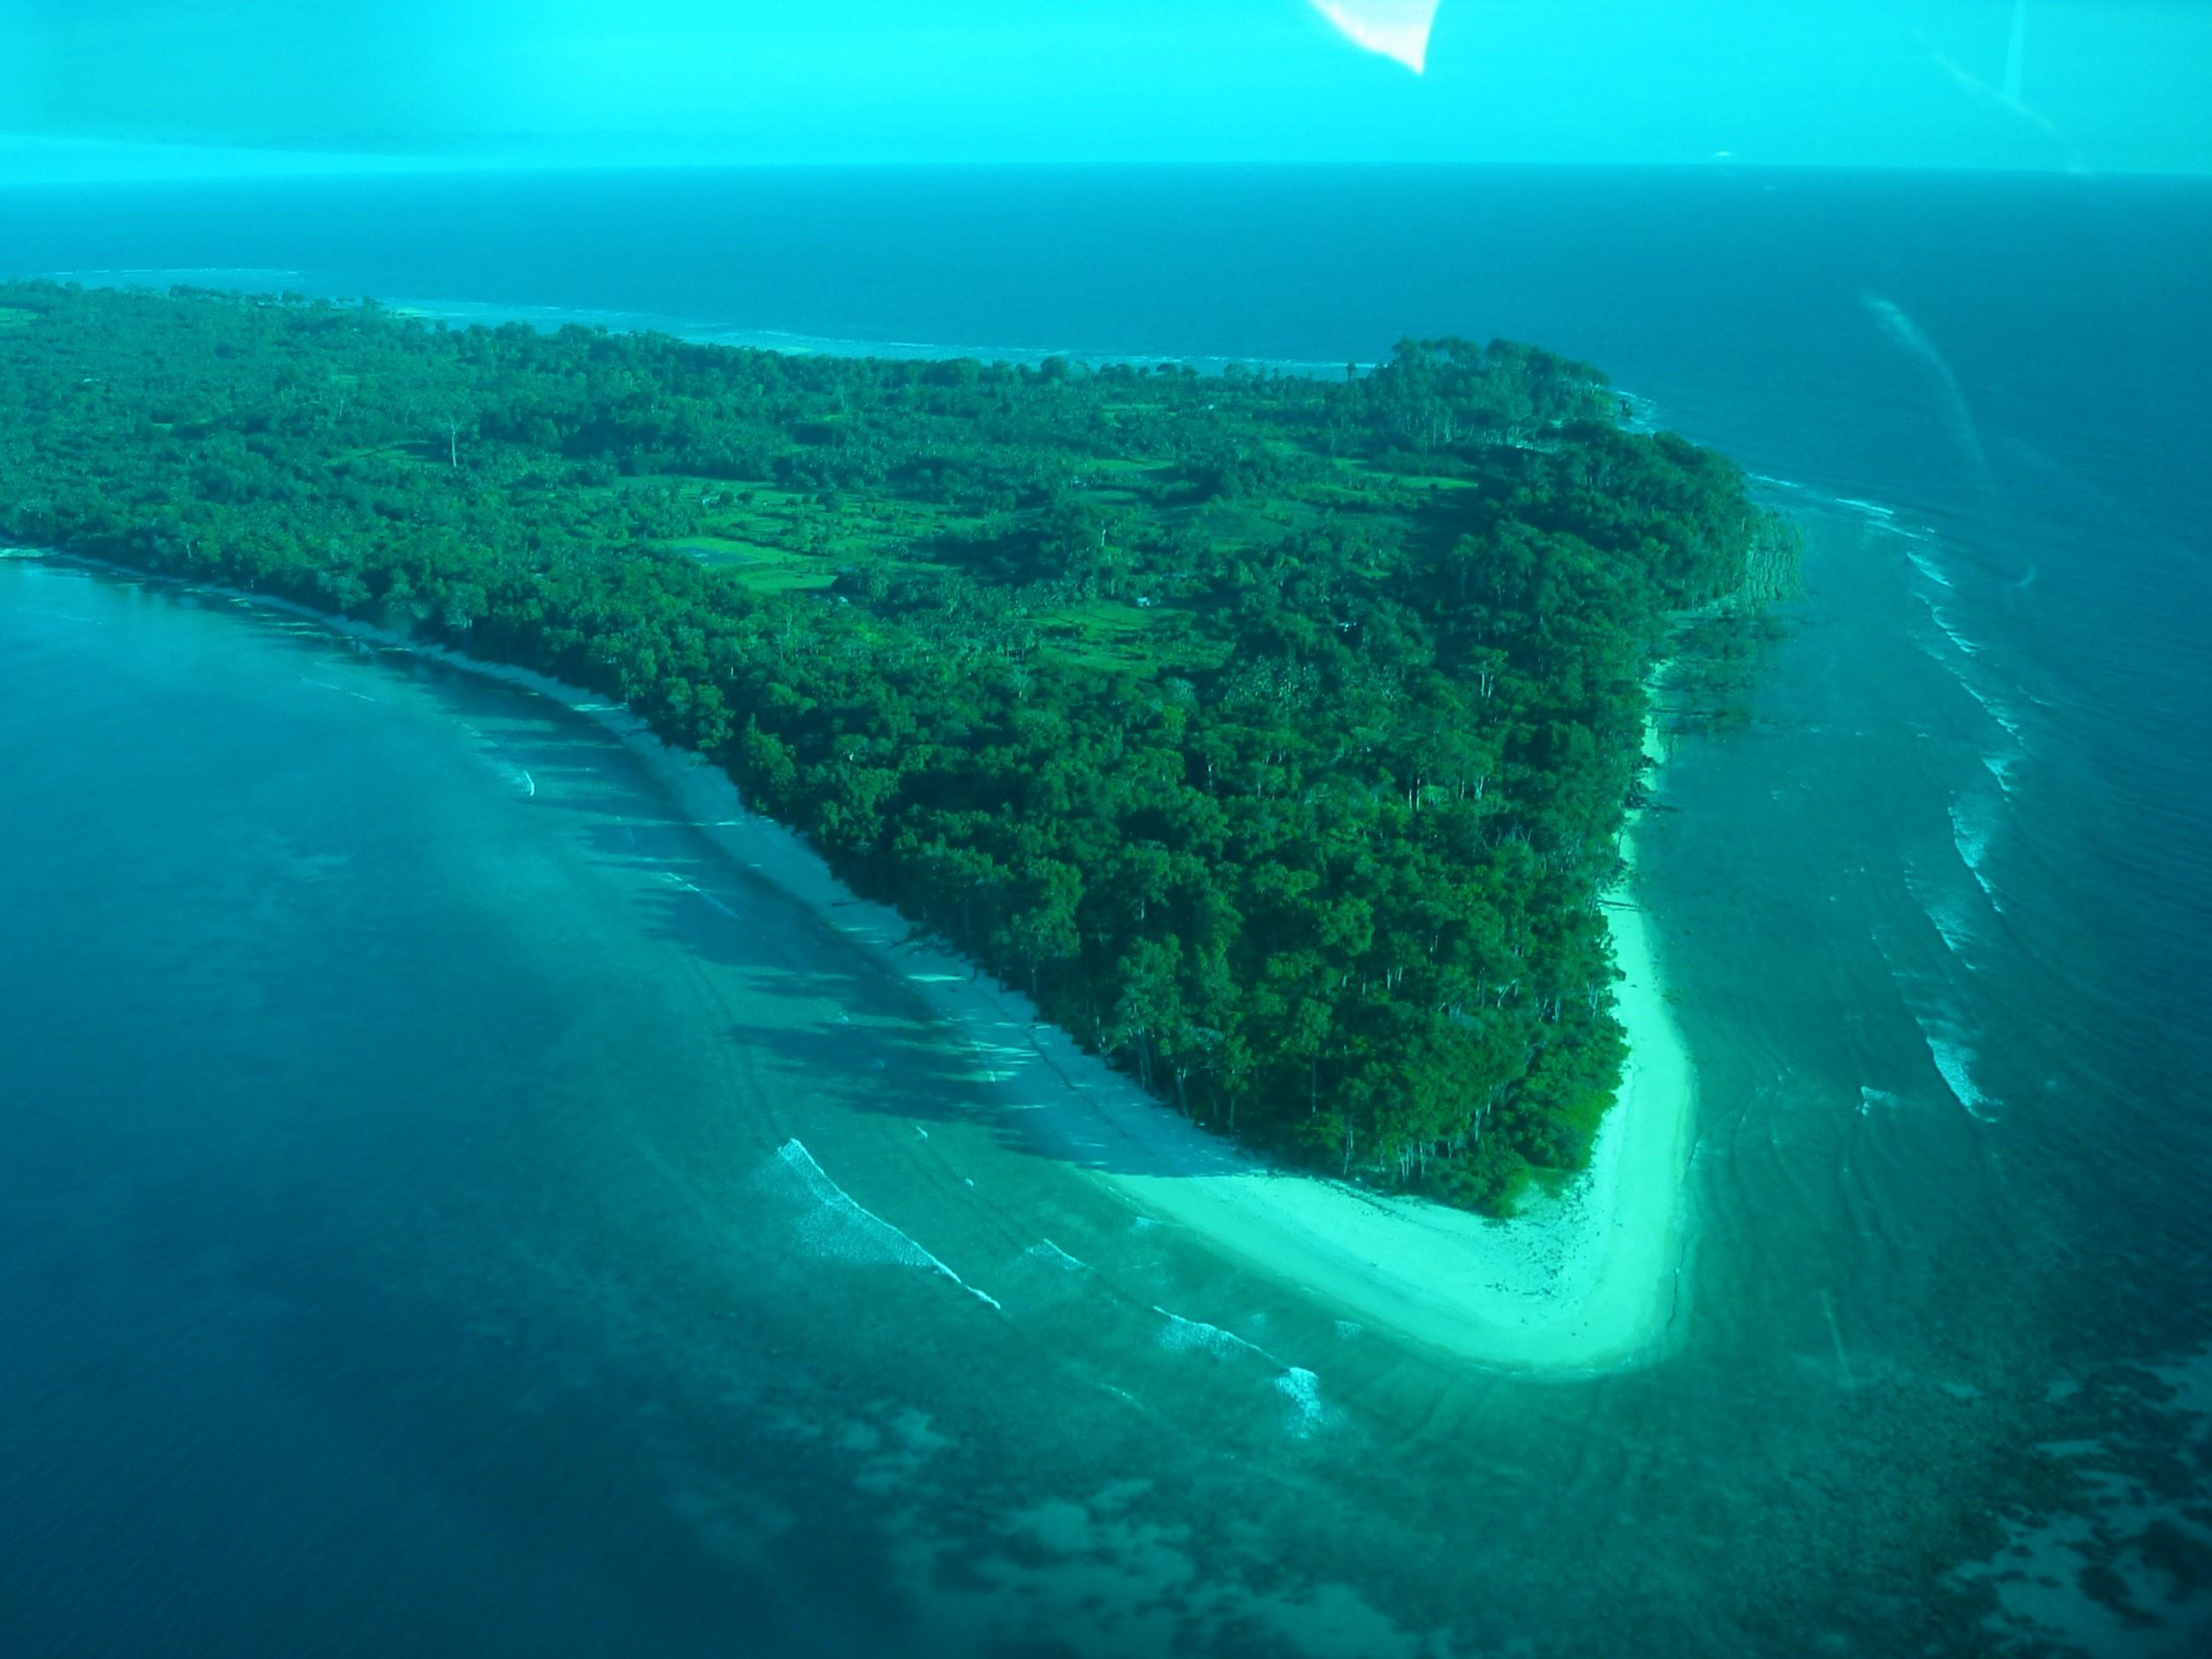 Aerial view of the Neil Island